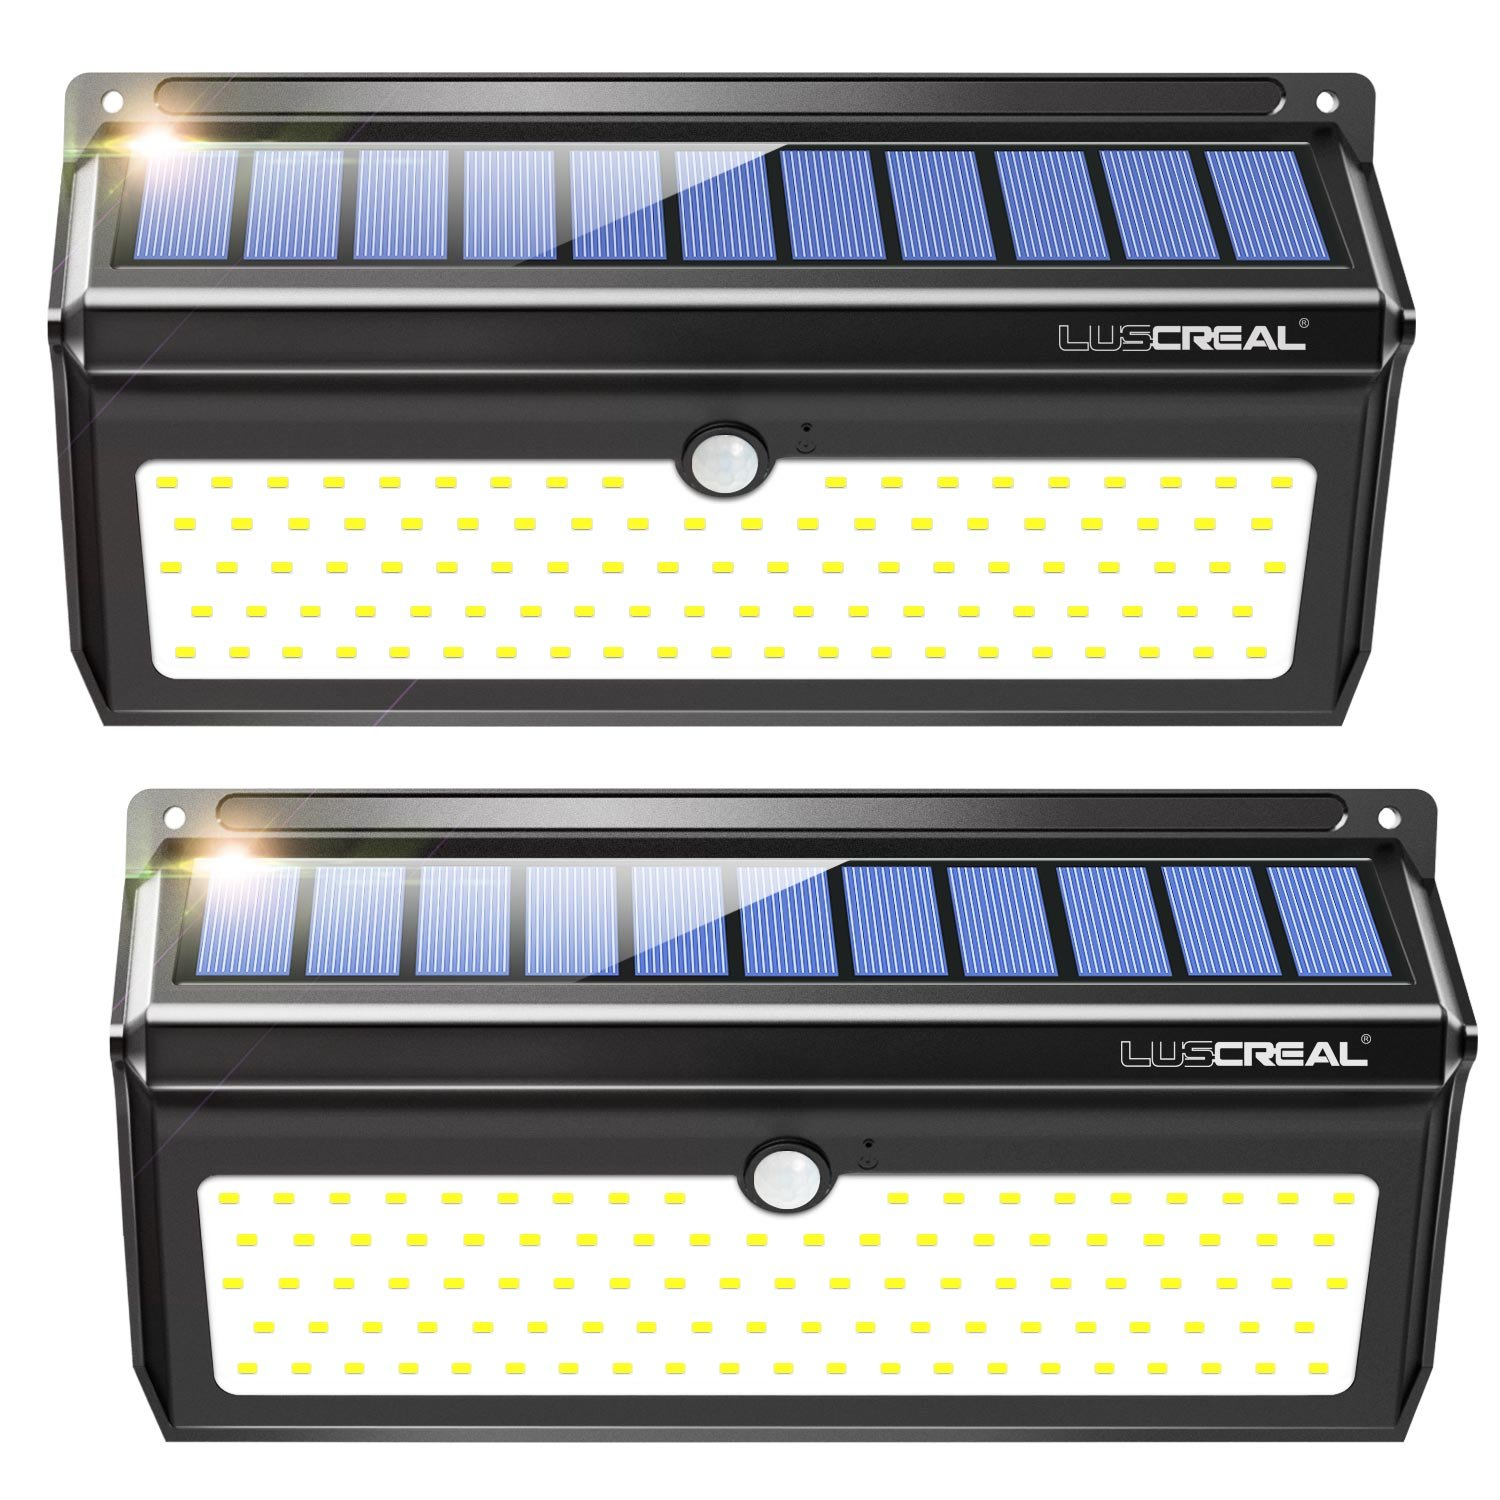 Solar lights Outdoor Luscreal Super Bright 100 LED Solar Motion Sensor Security Wall Lights for Front Door Back Yard Garage Deck Porch Step Stair Garden Fence Driveaway Patio 2000LM 2PACK